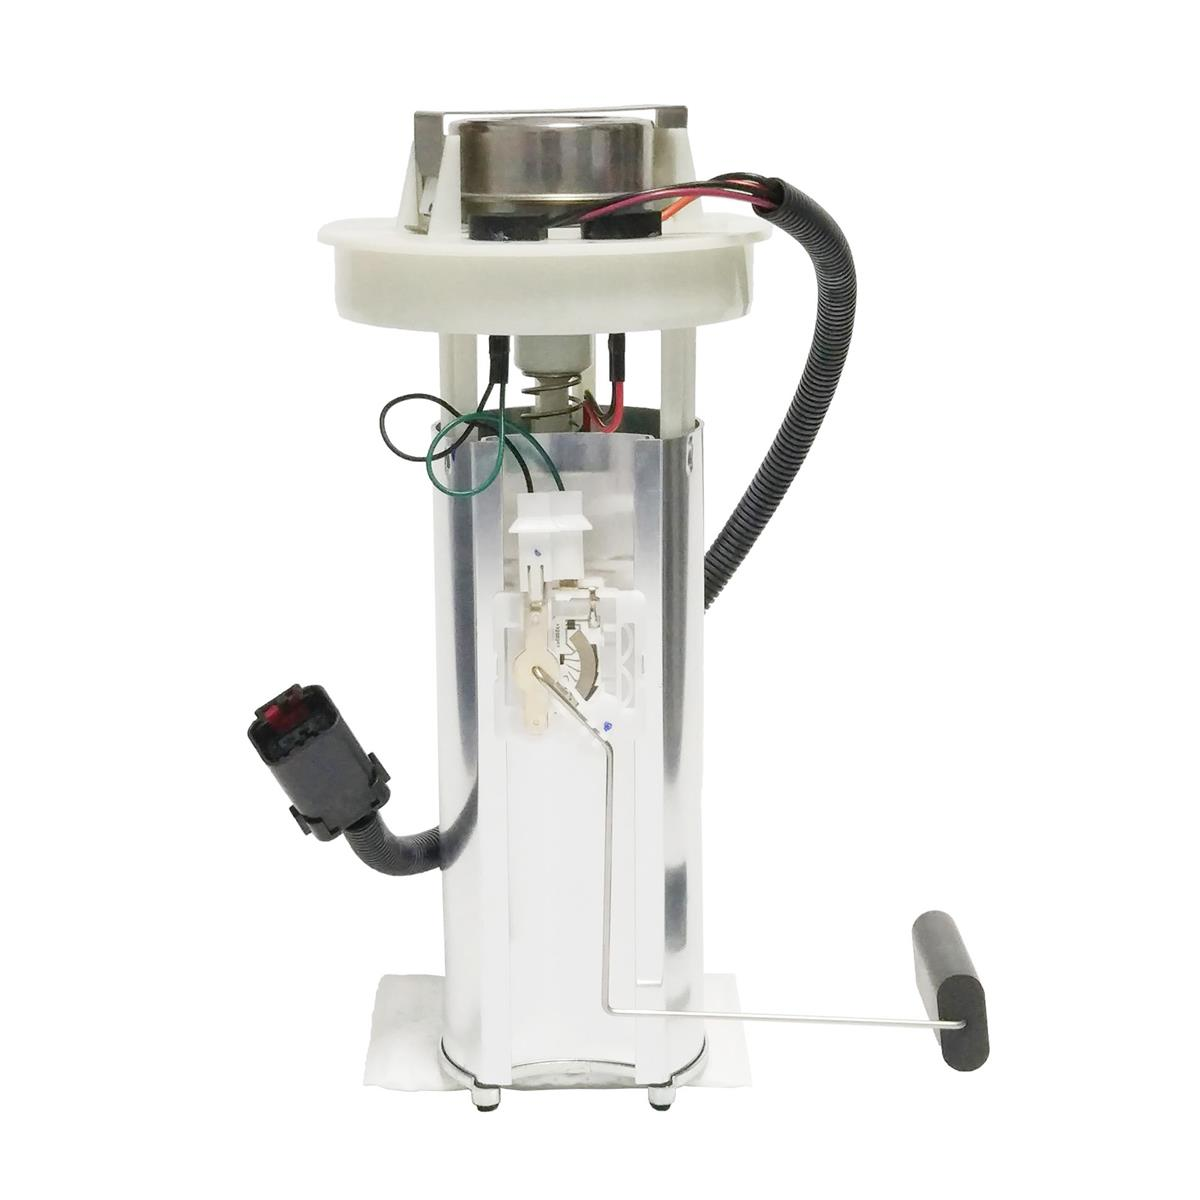 Herko Fuel Pump Module 026GE-T For Jeep Cherokee 2.5L 4.0L 1997-2001